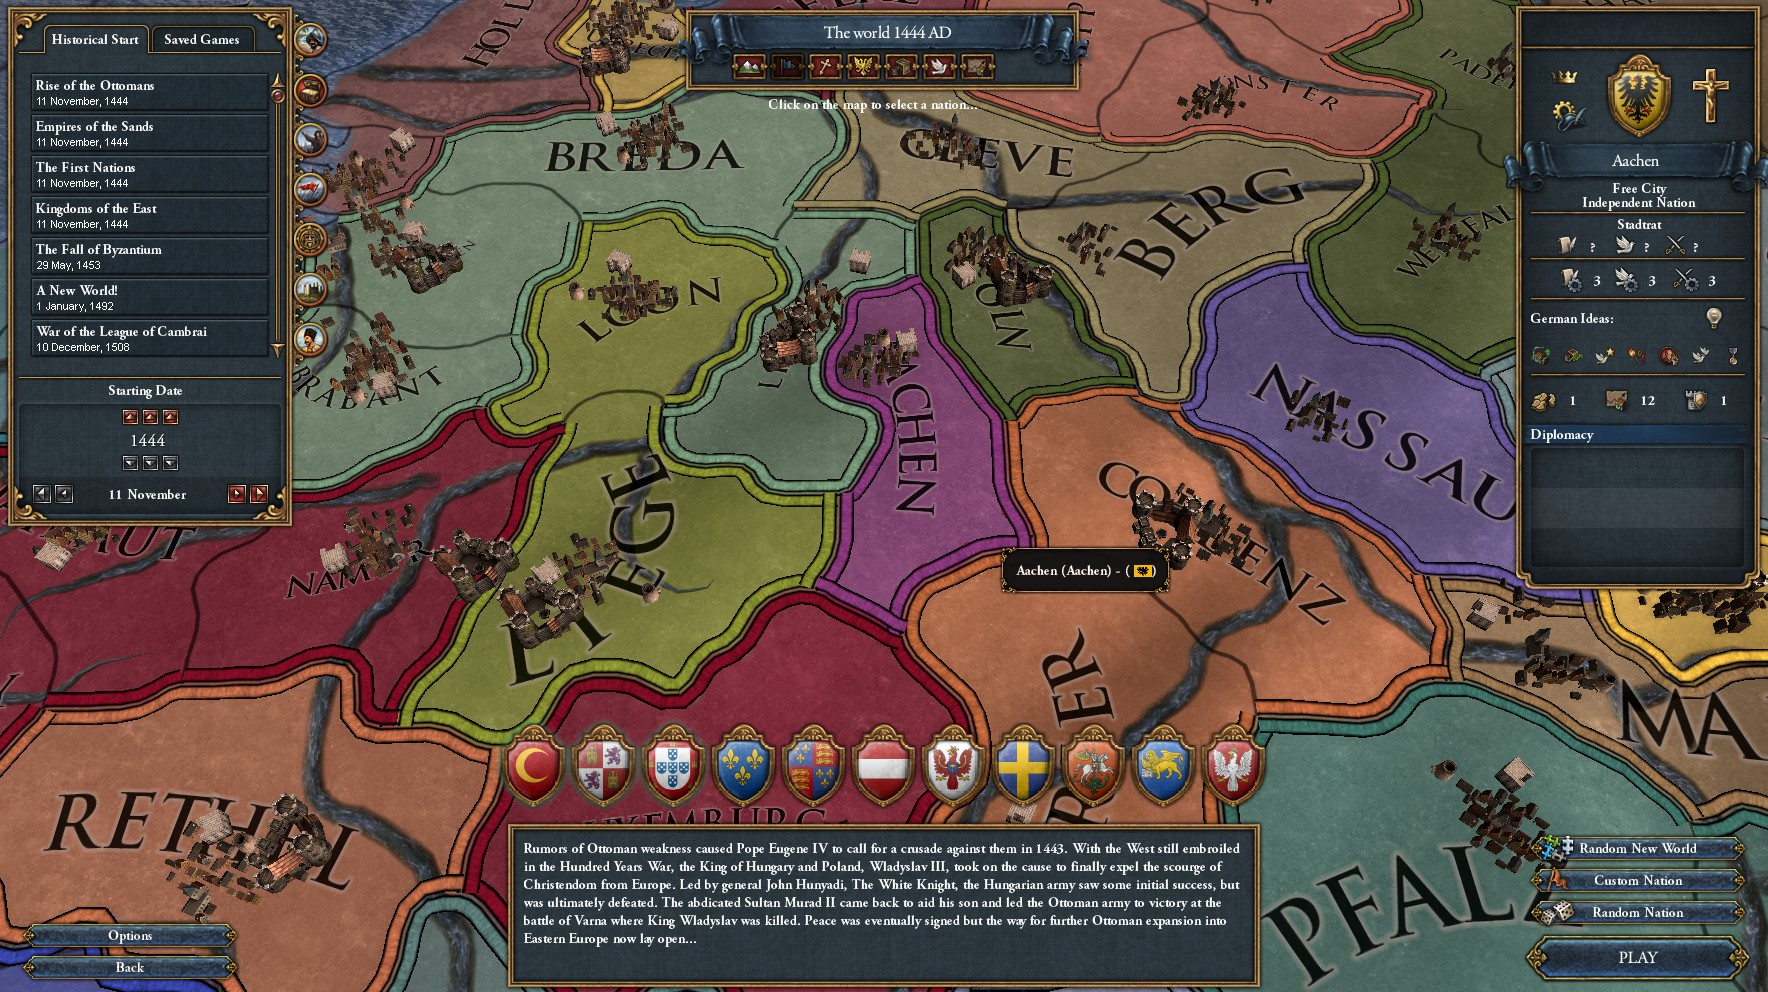 steam community guide europa universalis iv guides aachen